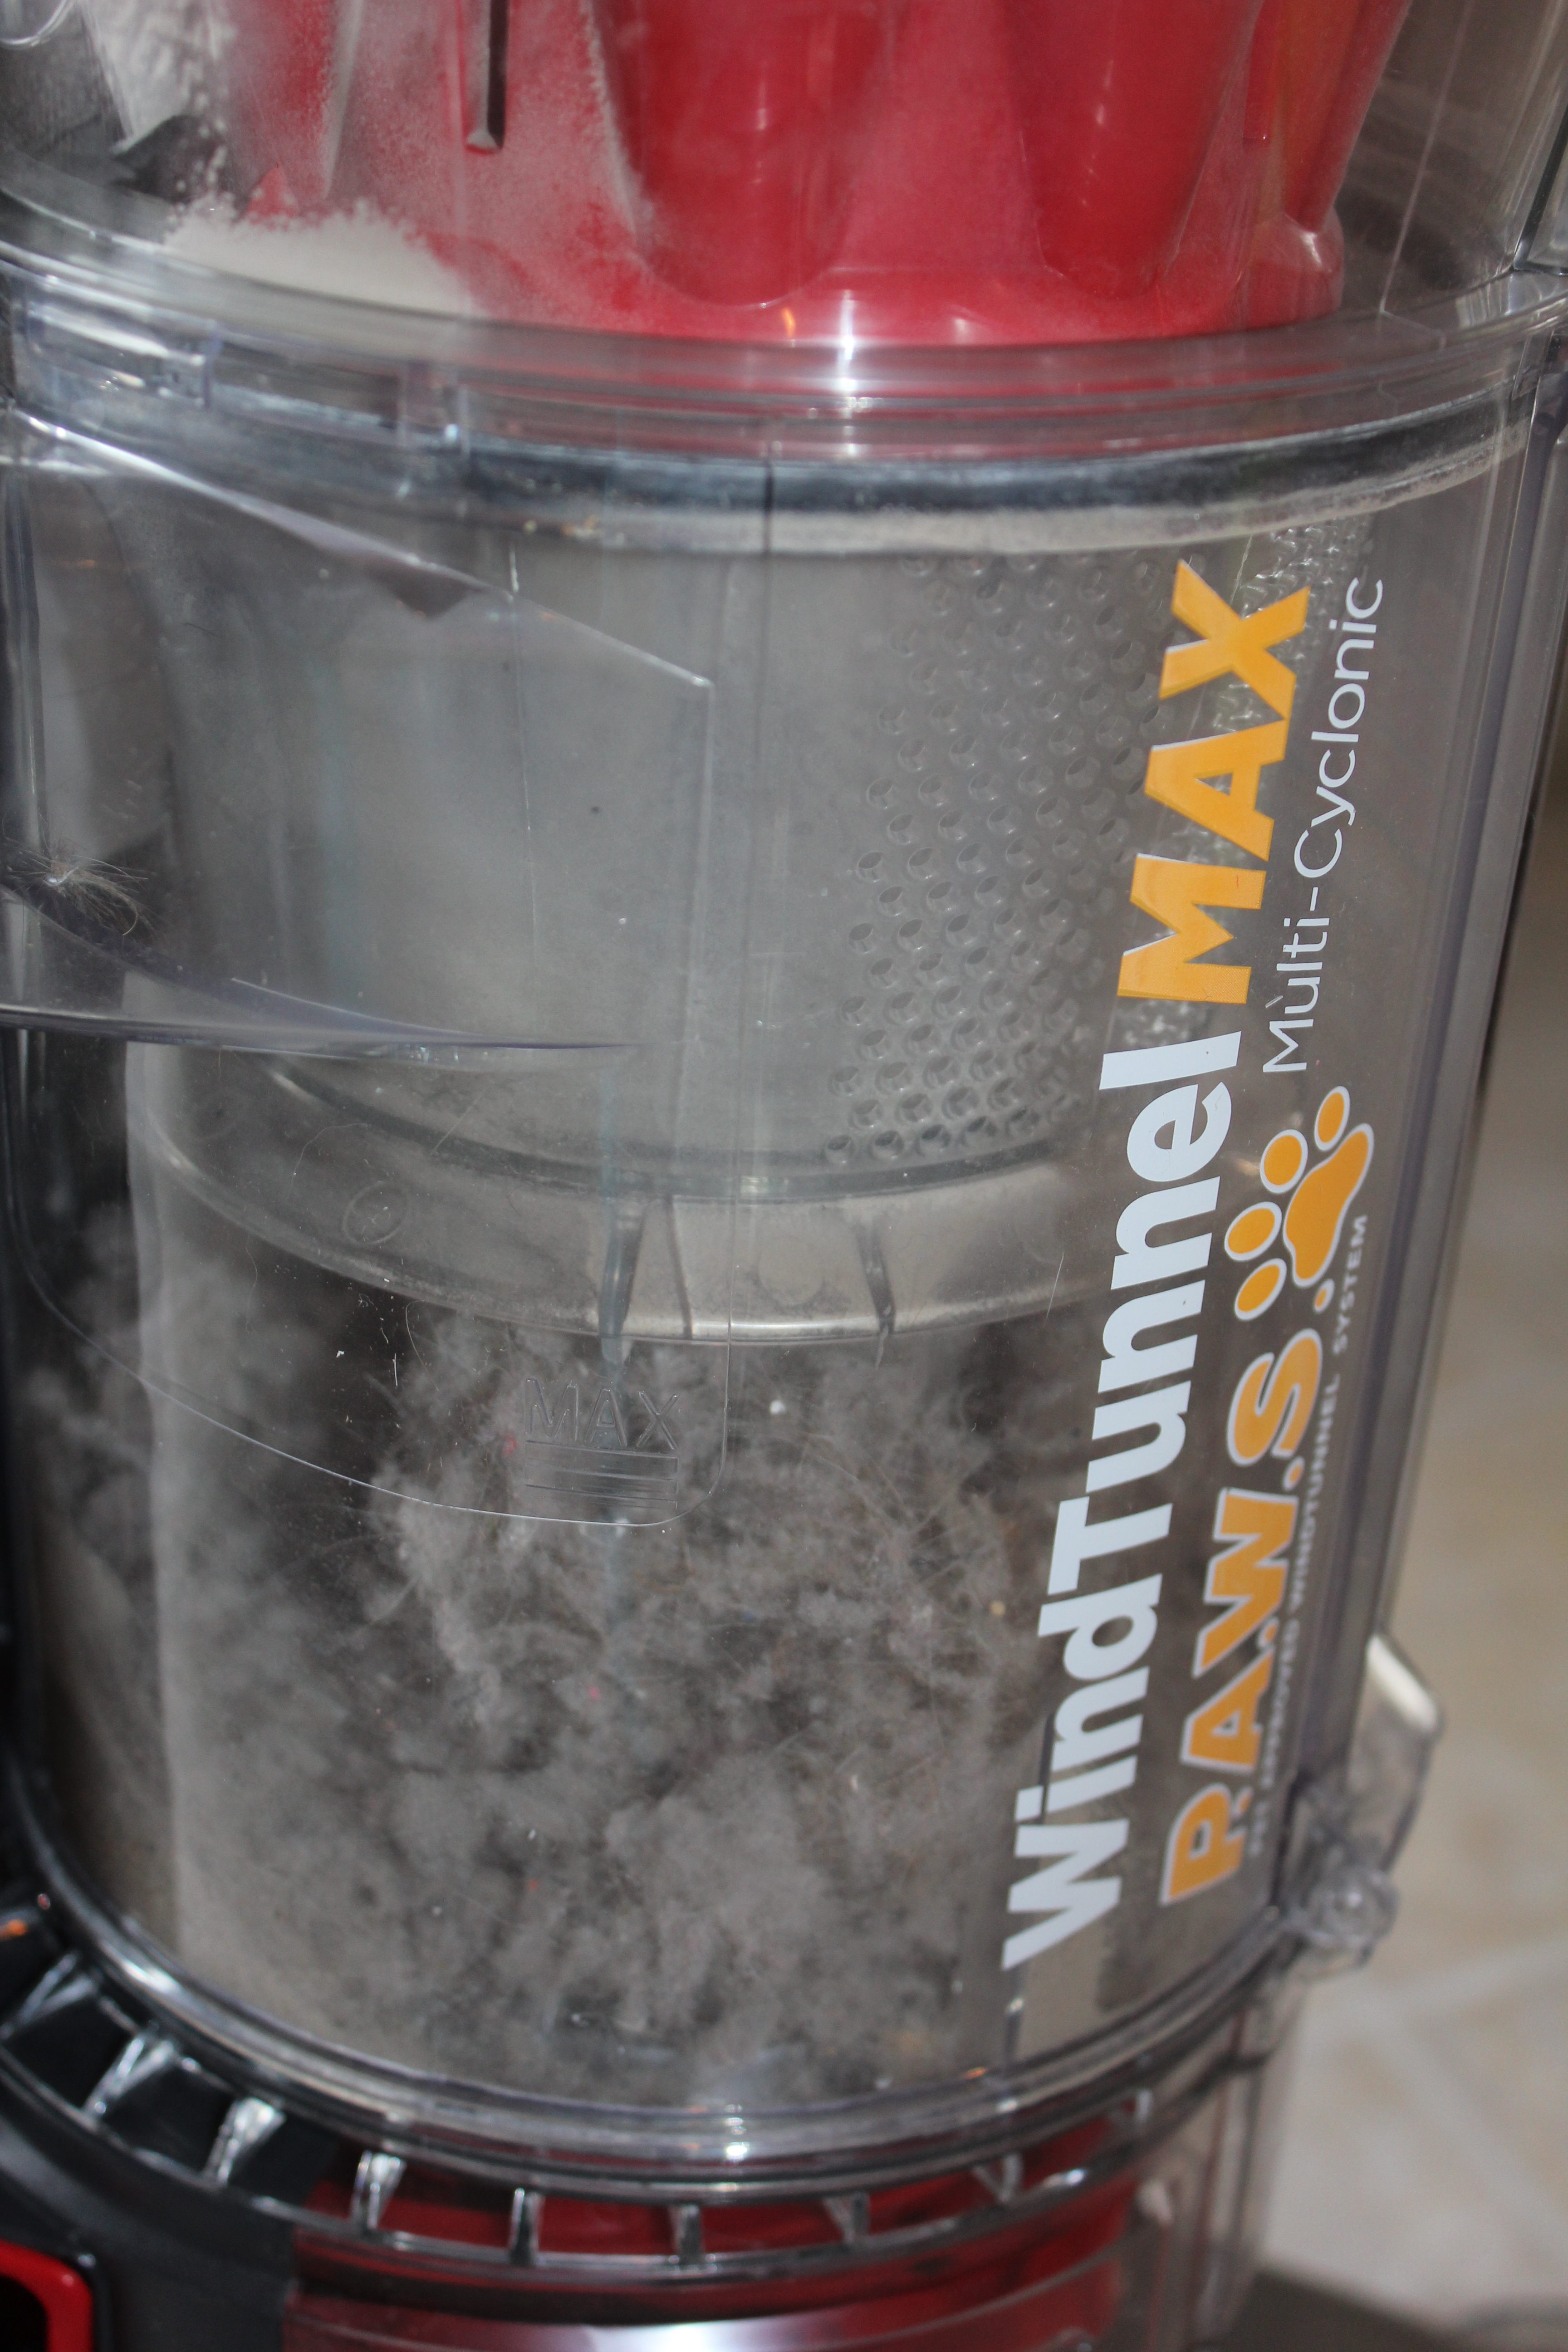 Hoover Windtunnel Max Pet Plus Multi Cyclonic Bagless Upright